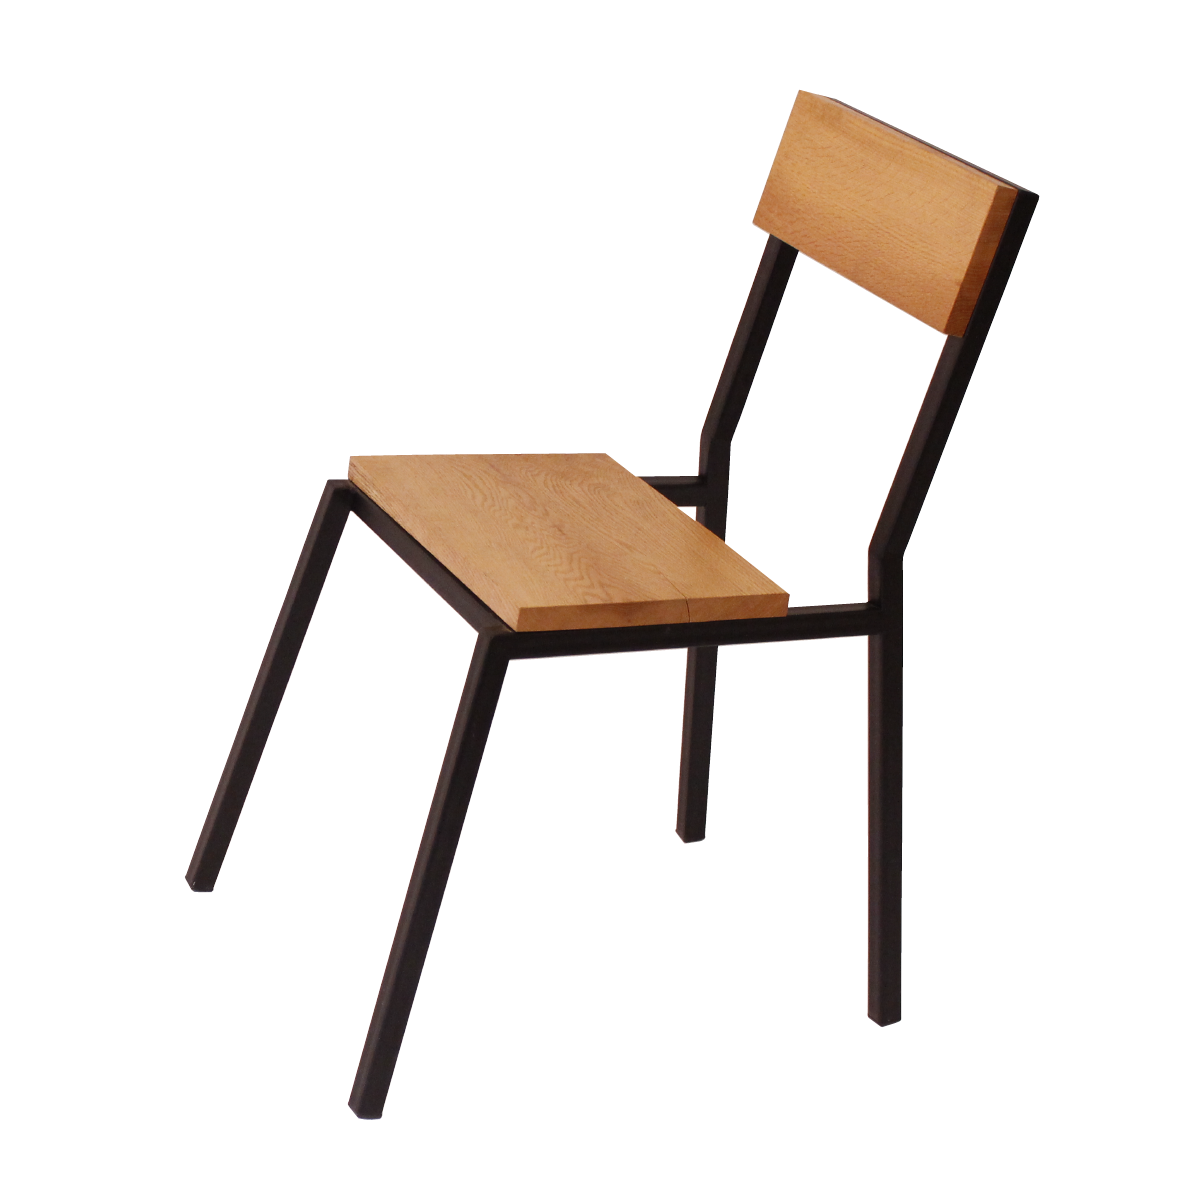 chair-5-eighths-oak-and-steel-png